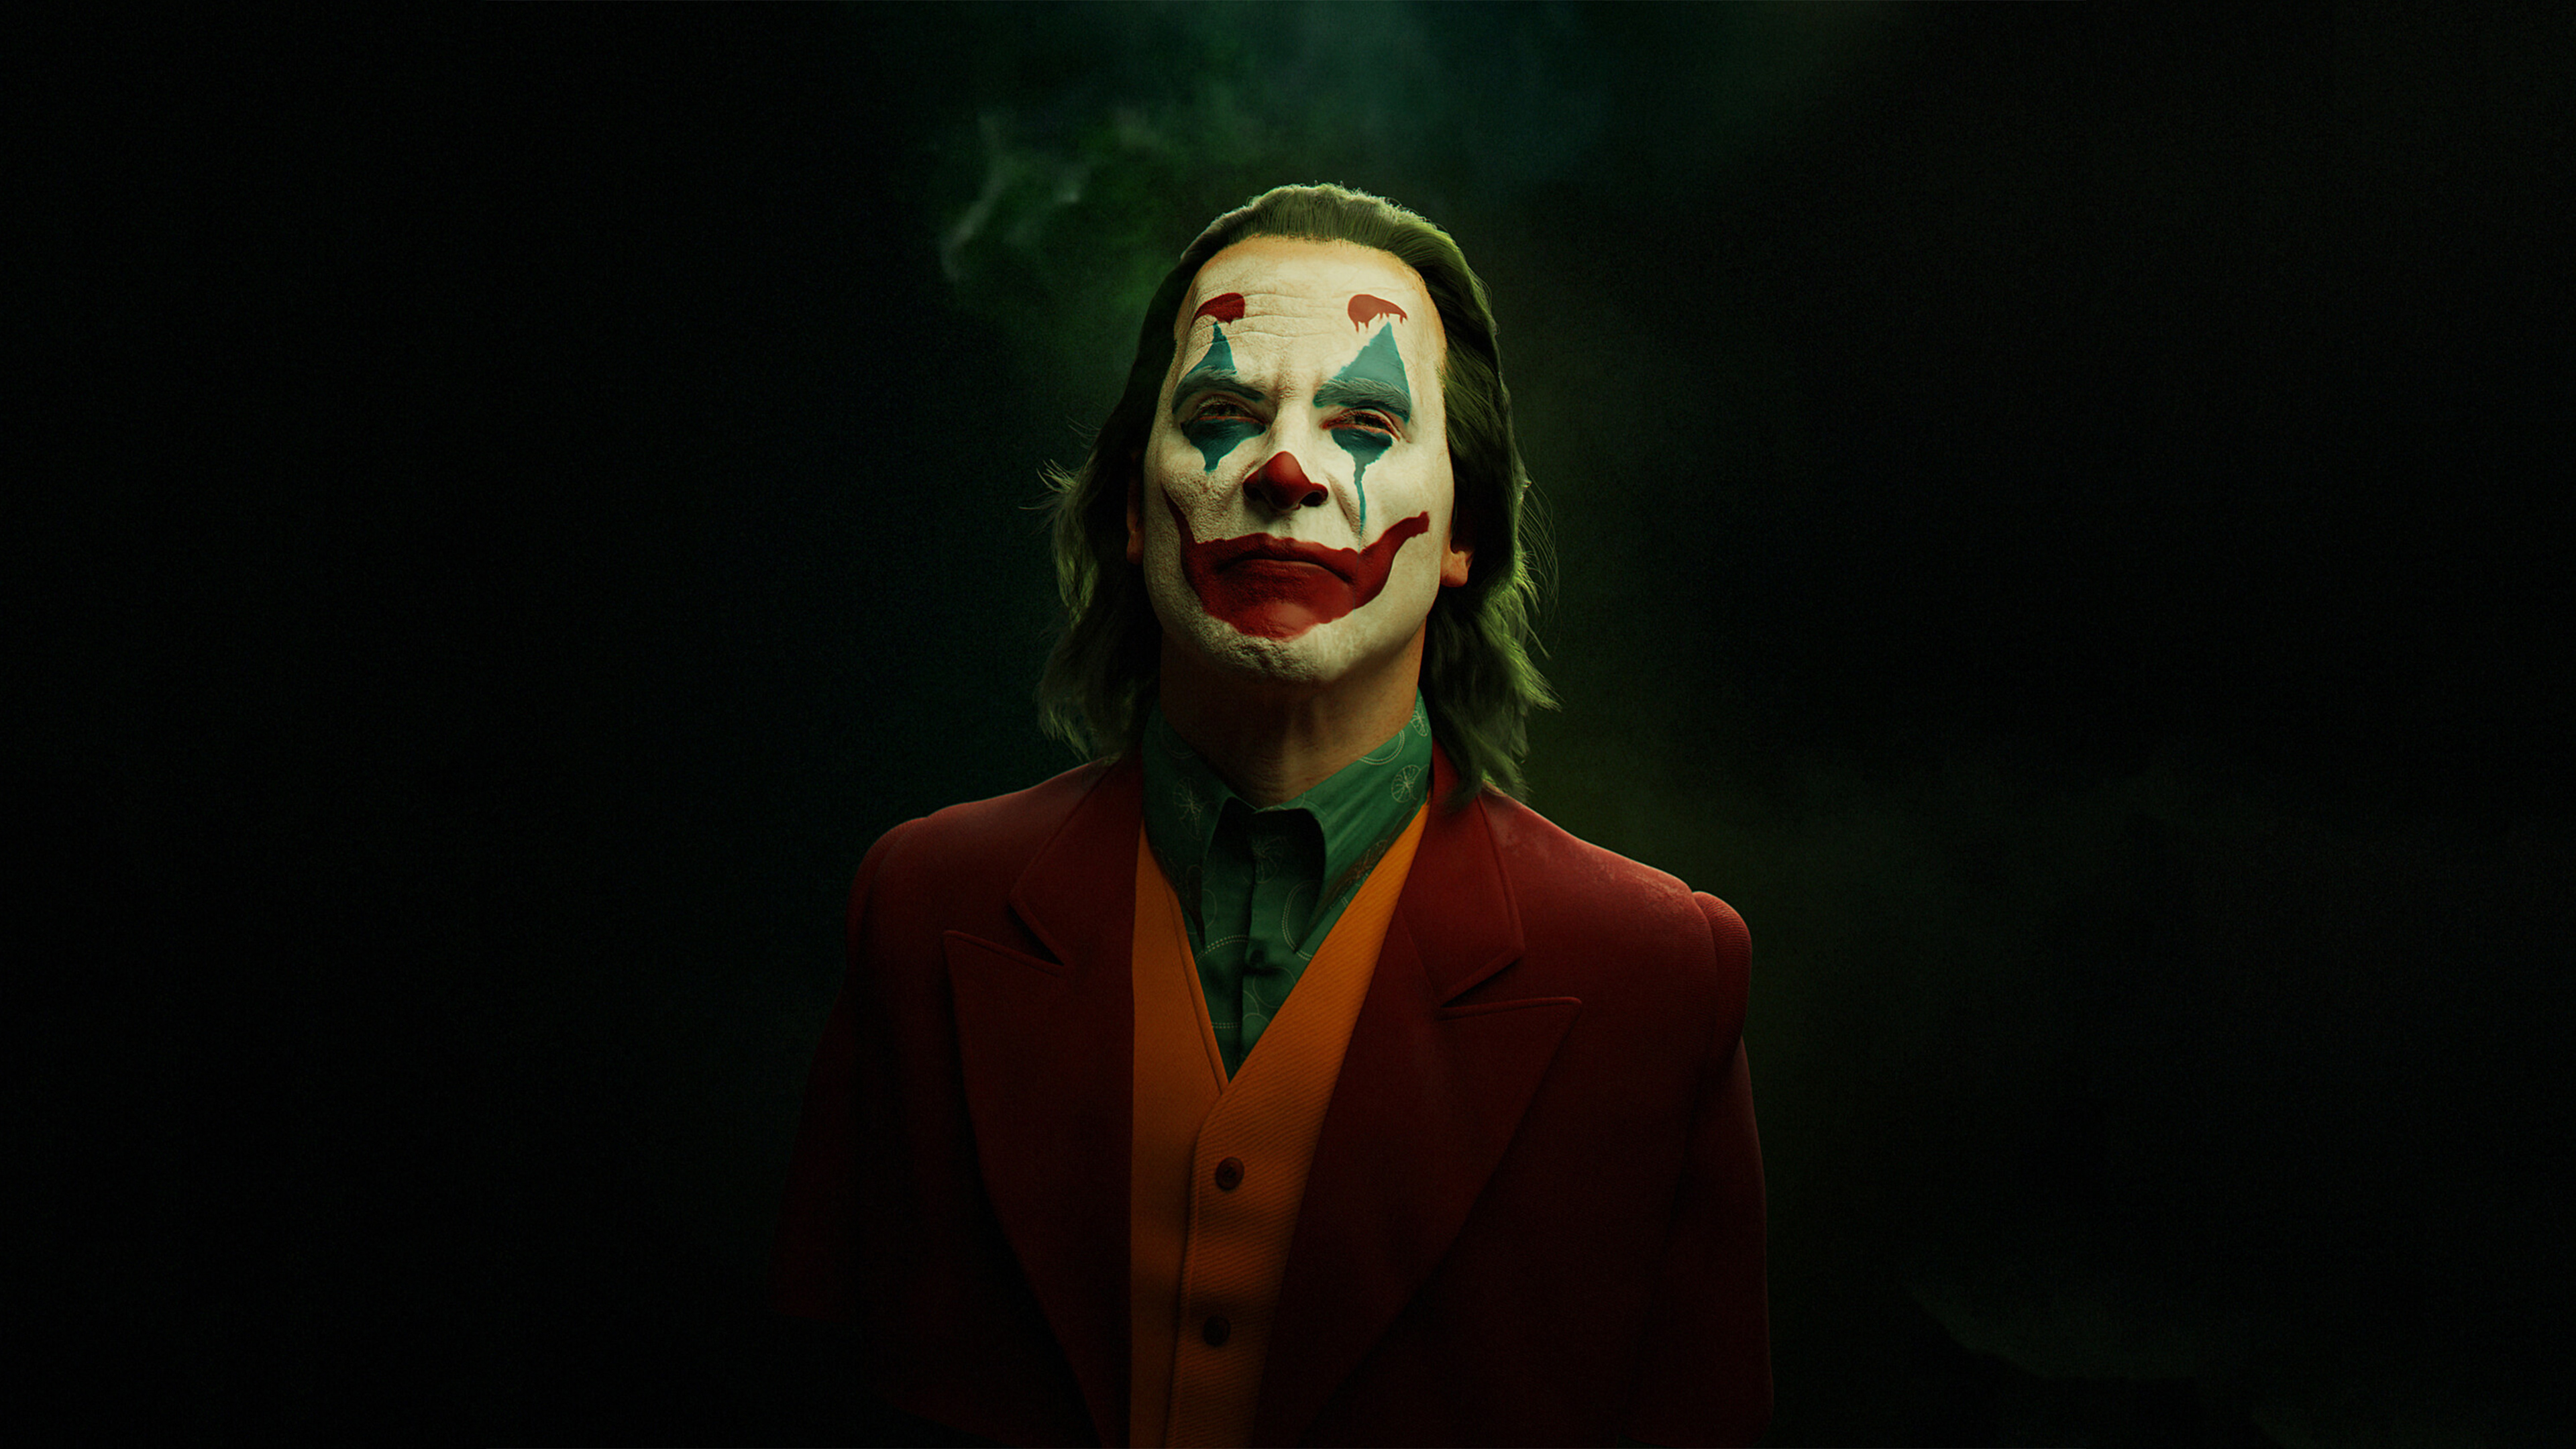 Joker 4k 2020 Wallpaper Hd Superheroes 4k Wallpapers Images Photos And Background